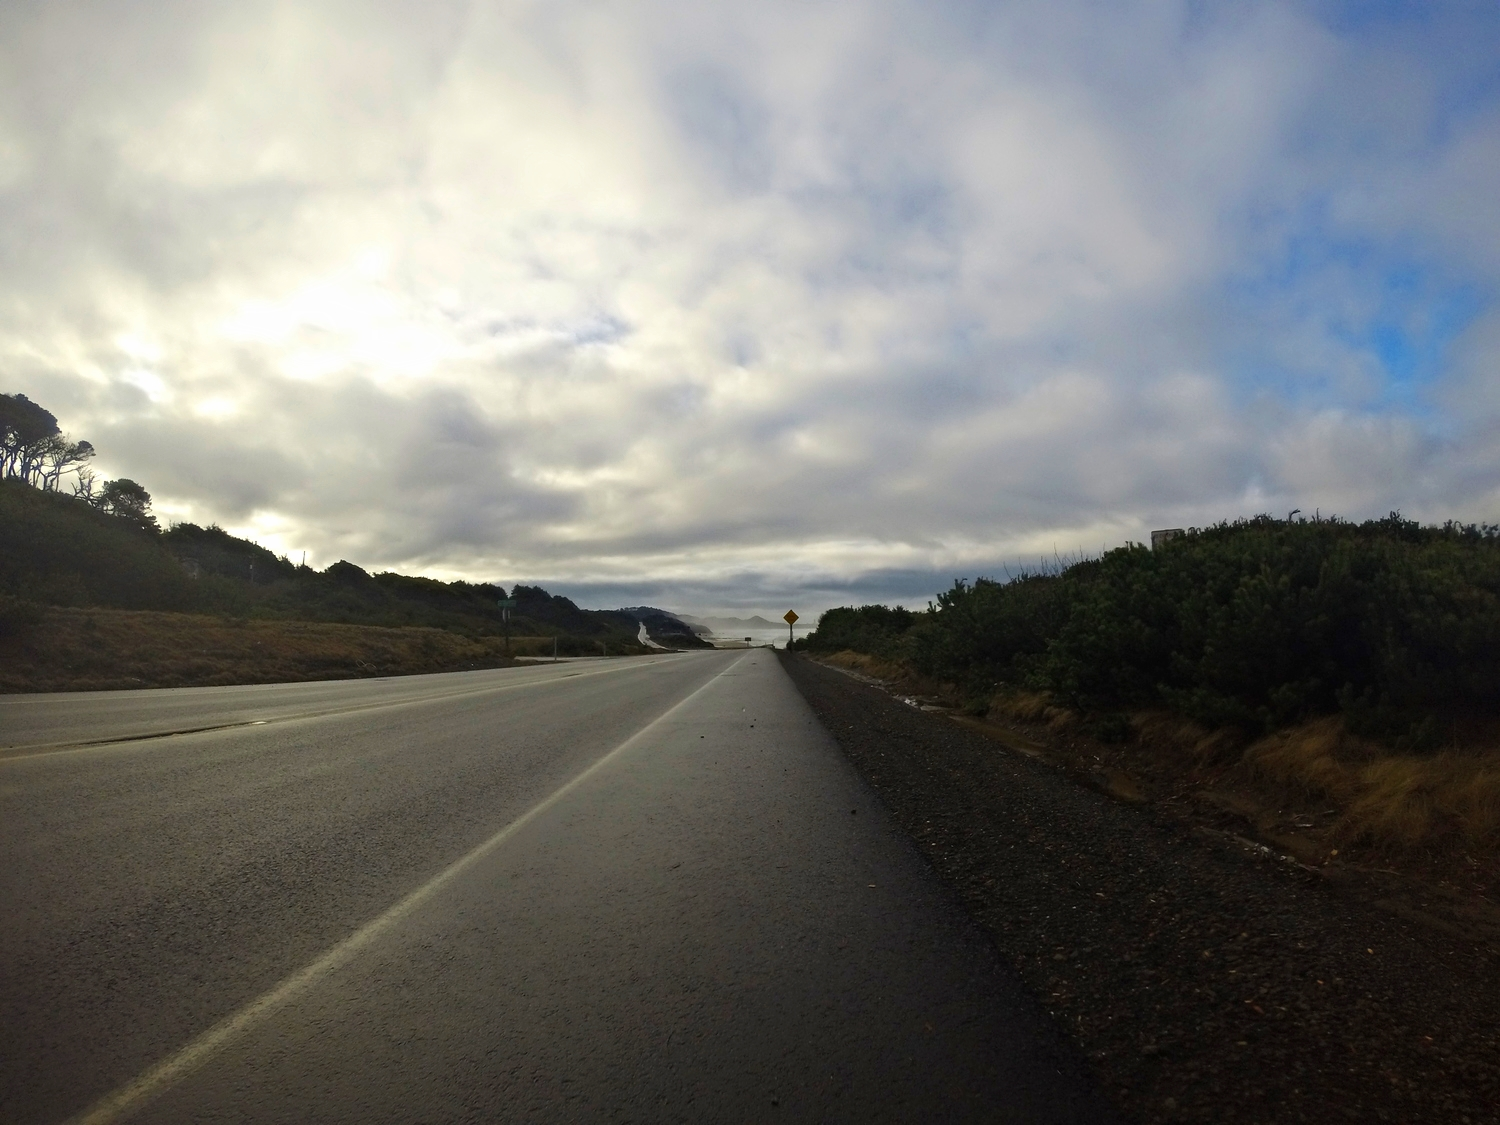 The road into Yachats!